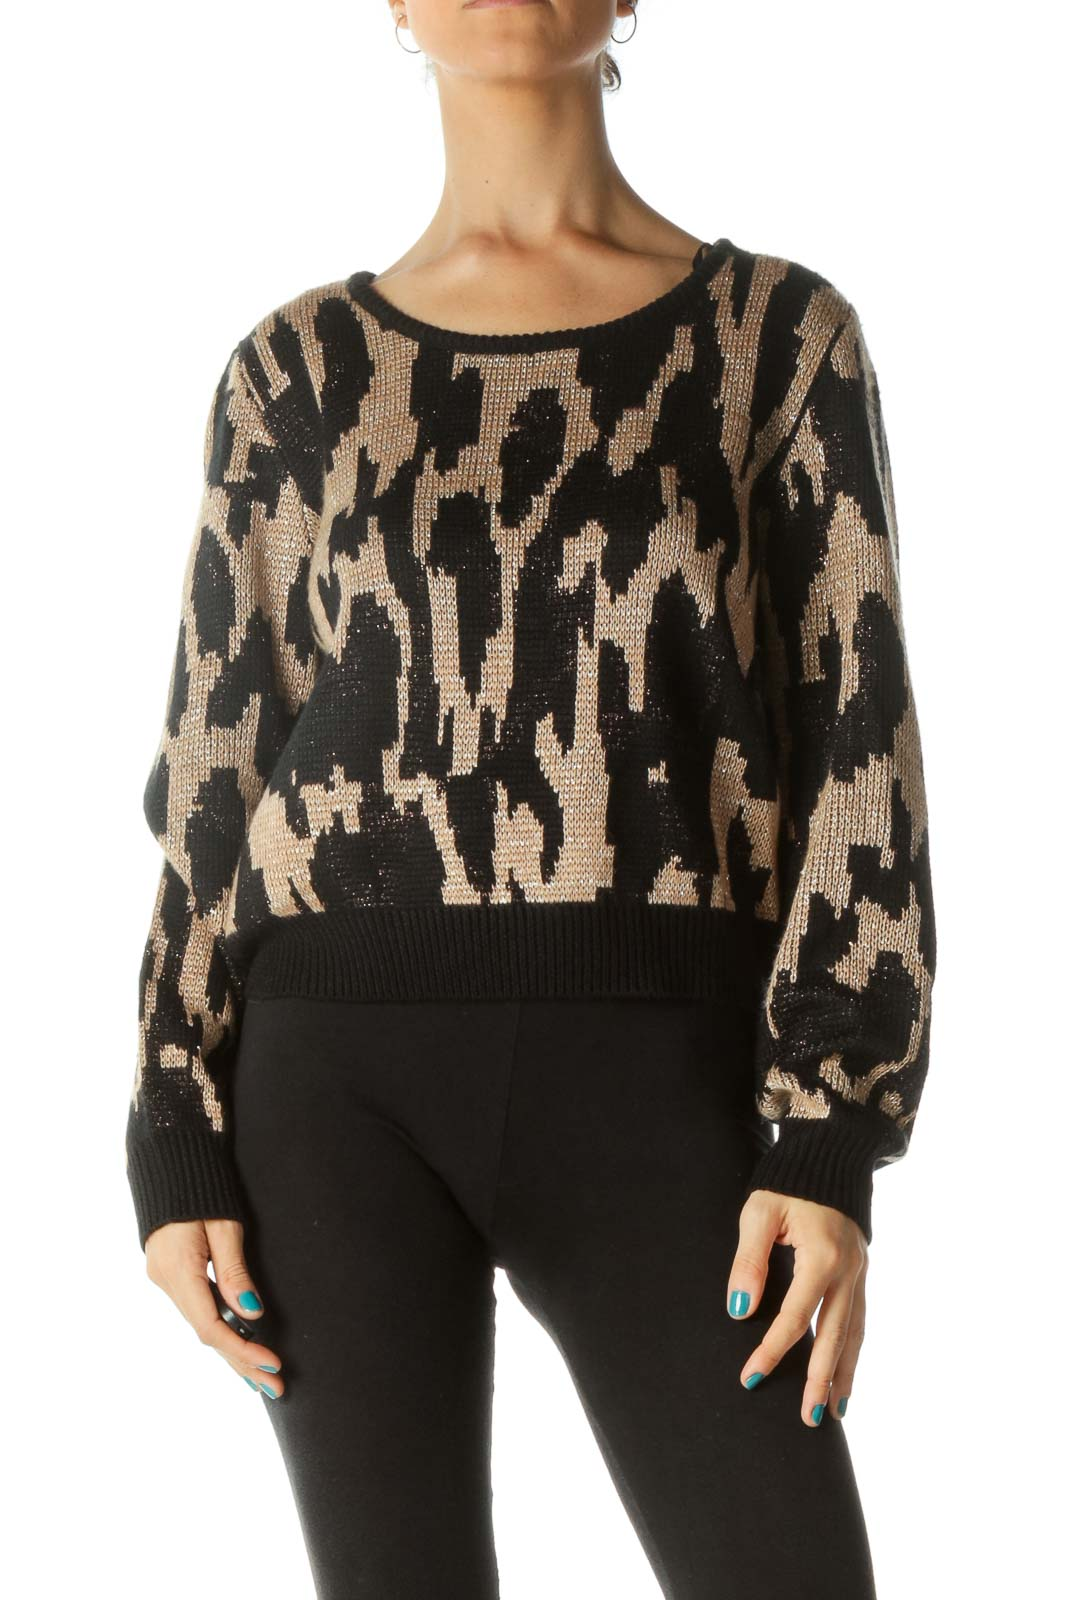 Black and Brown Print Knit Sweater